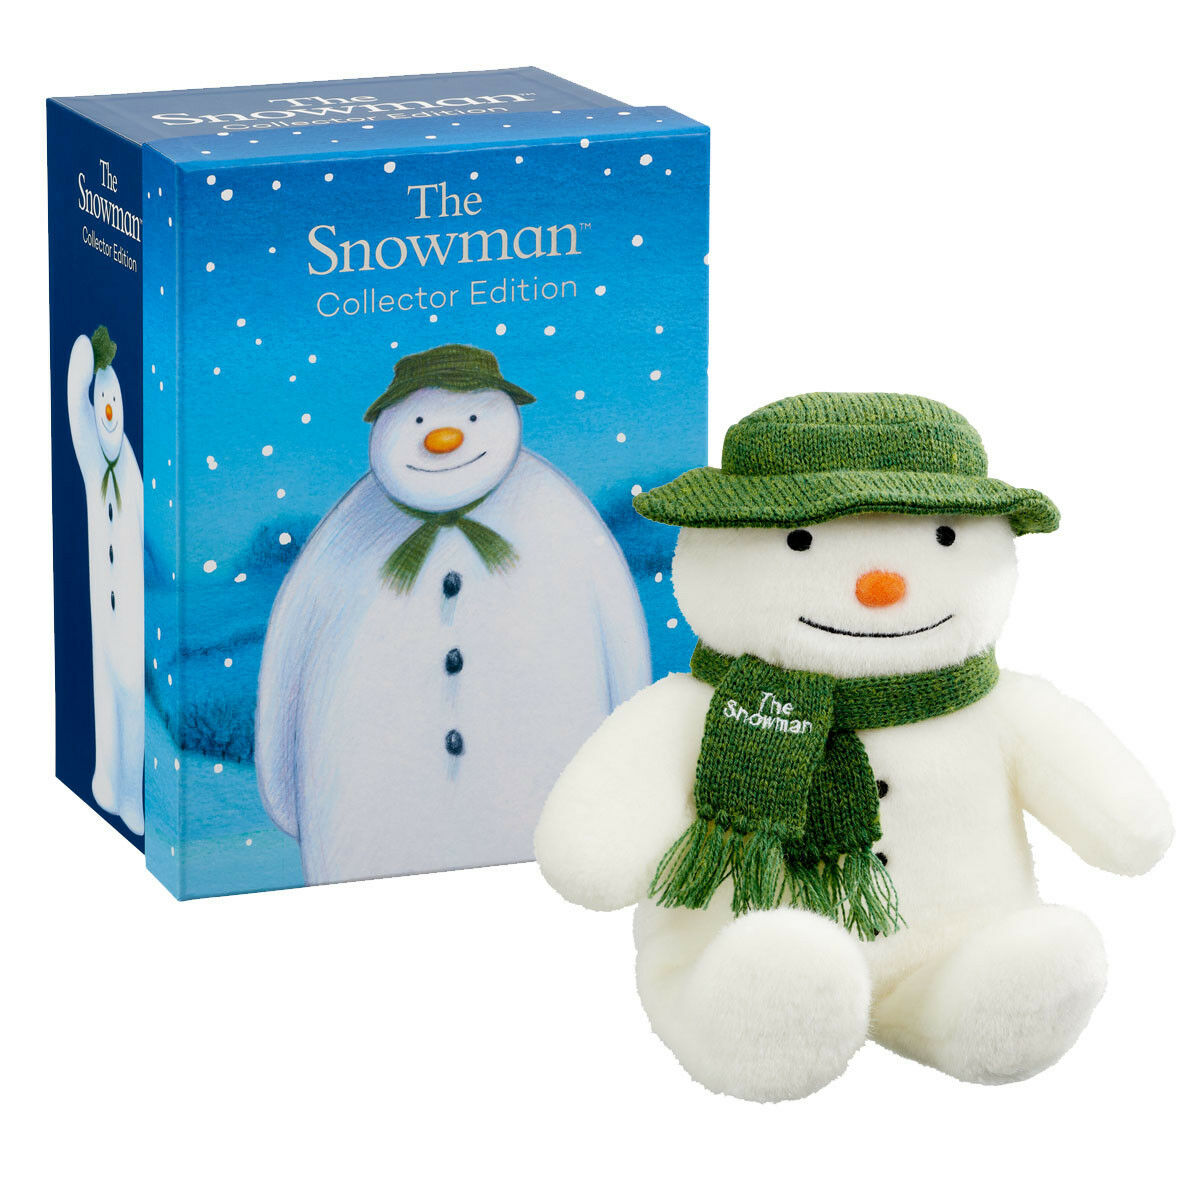 THE THE THE SNOWMAN COLLECTOR EDITION 25CM PLUSH IN GIFT BOX SOFT TOY NEW CHRISTMAS ed464c